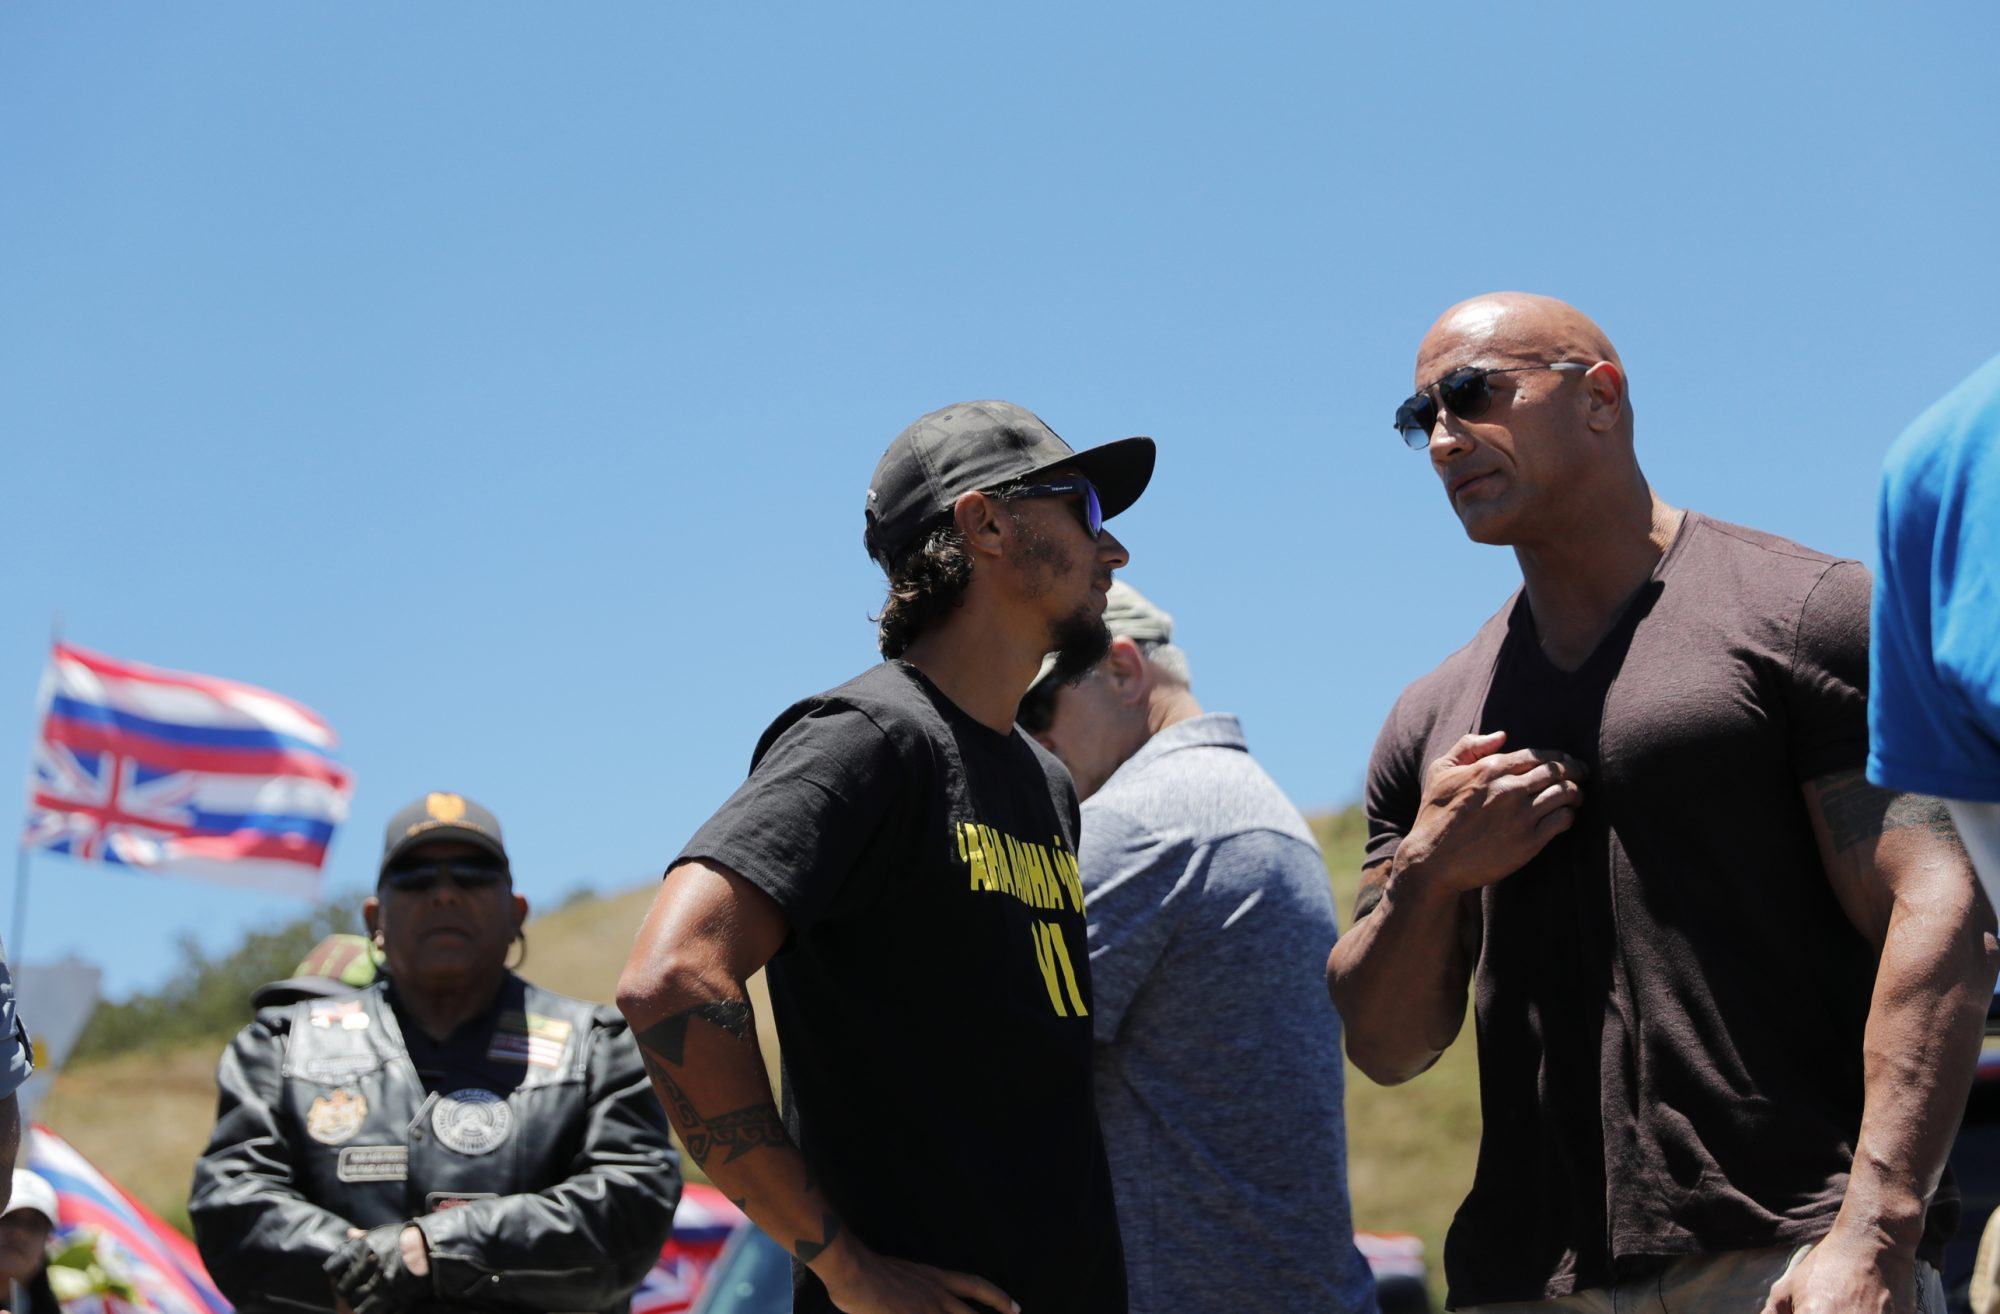 Dwayne Johnson at a protest in Mauna Kea on Hawaii Island